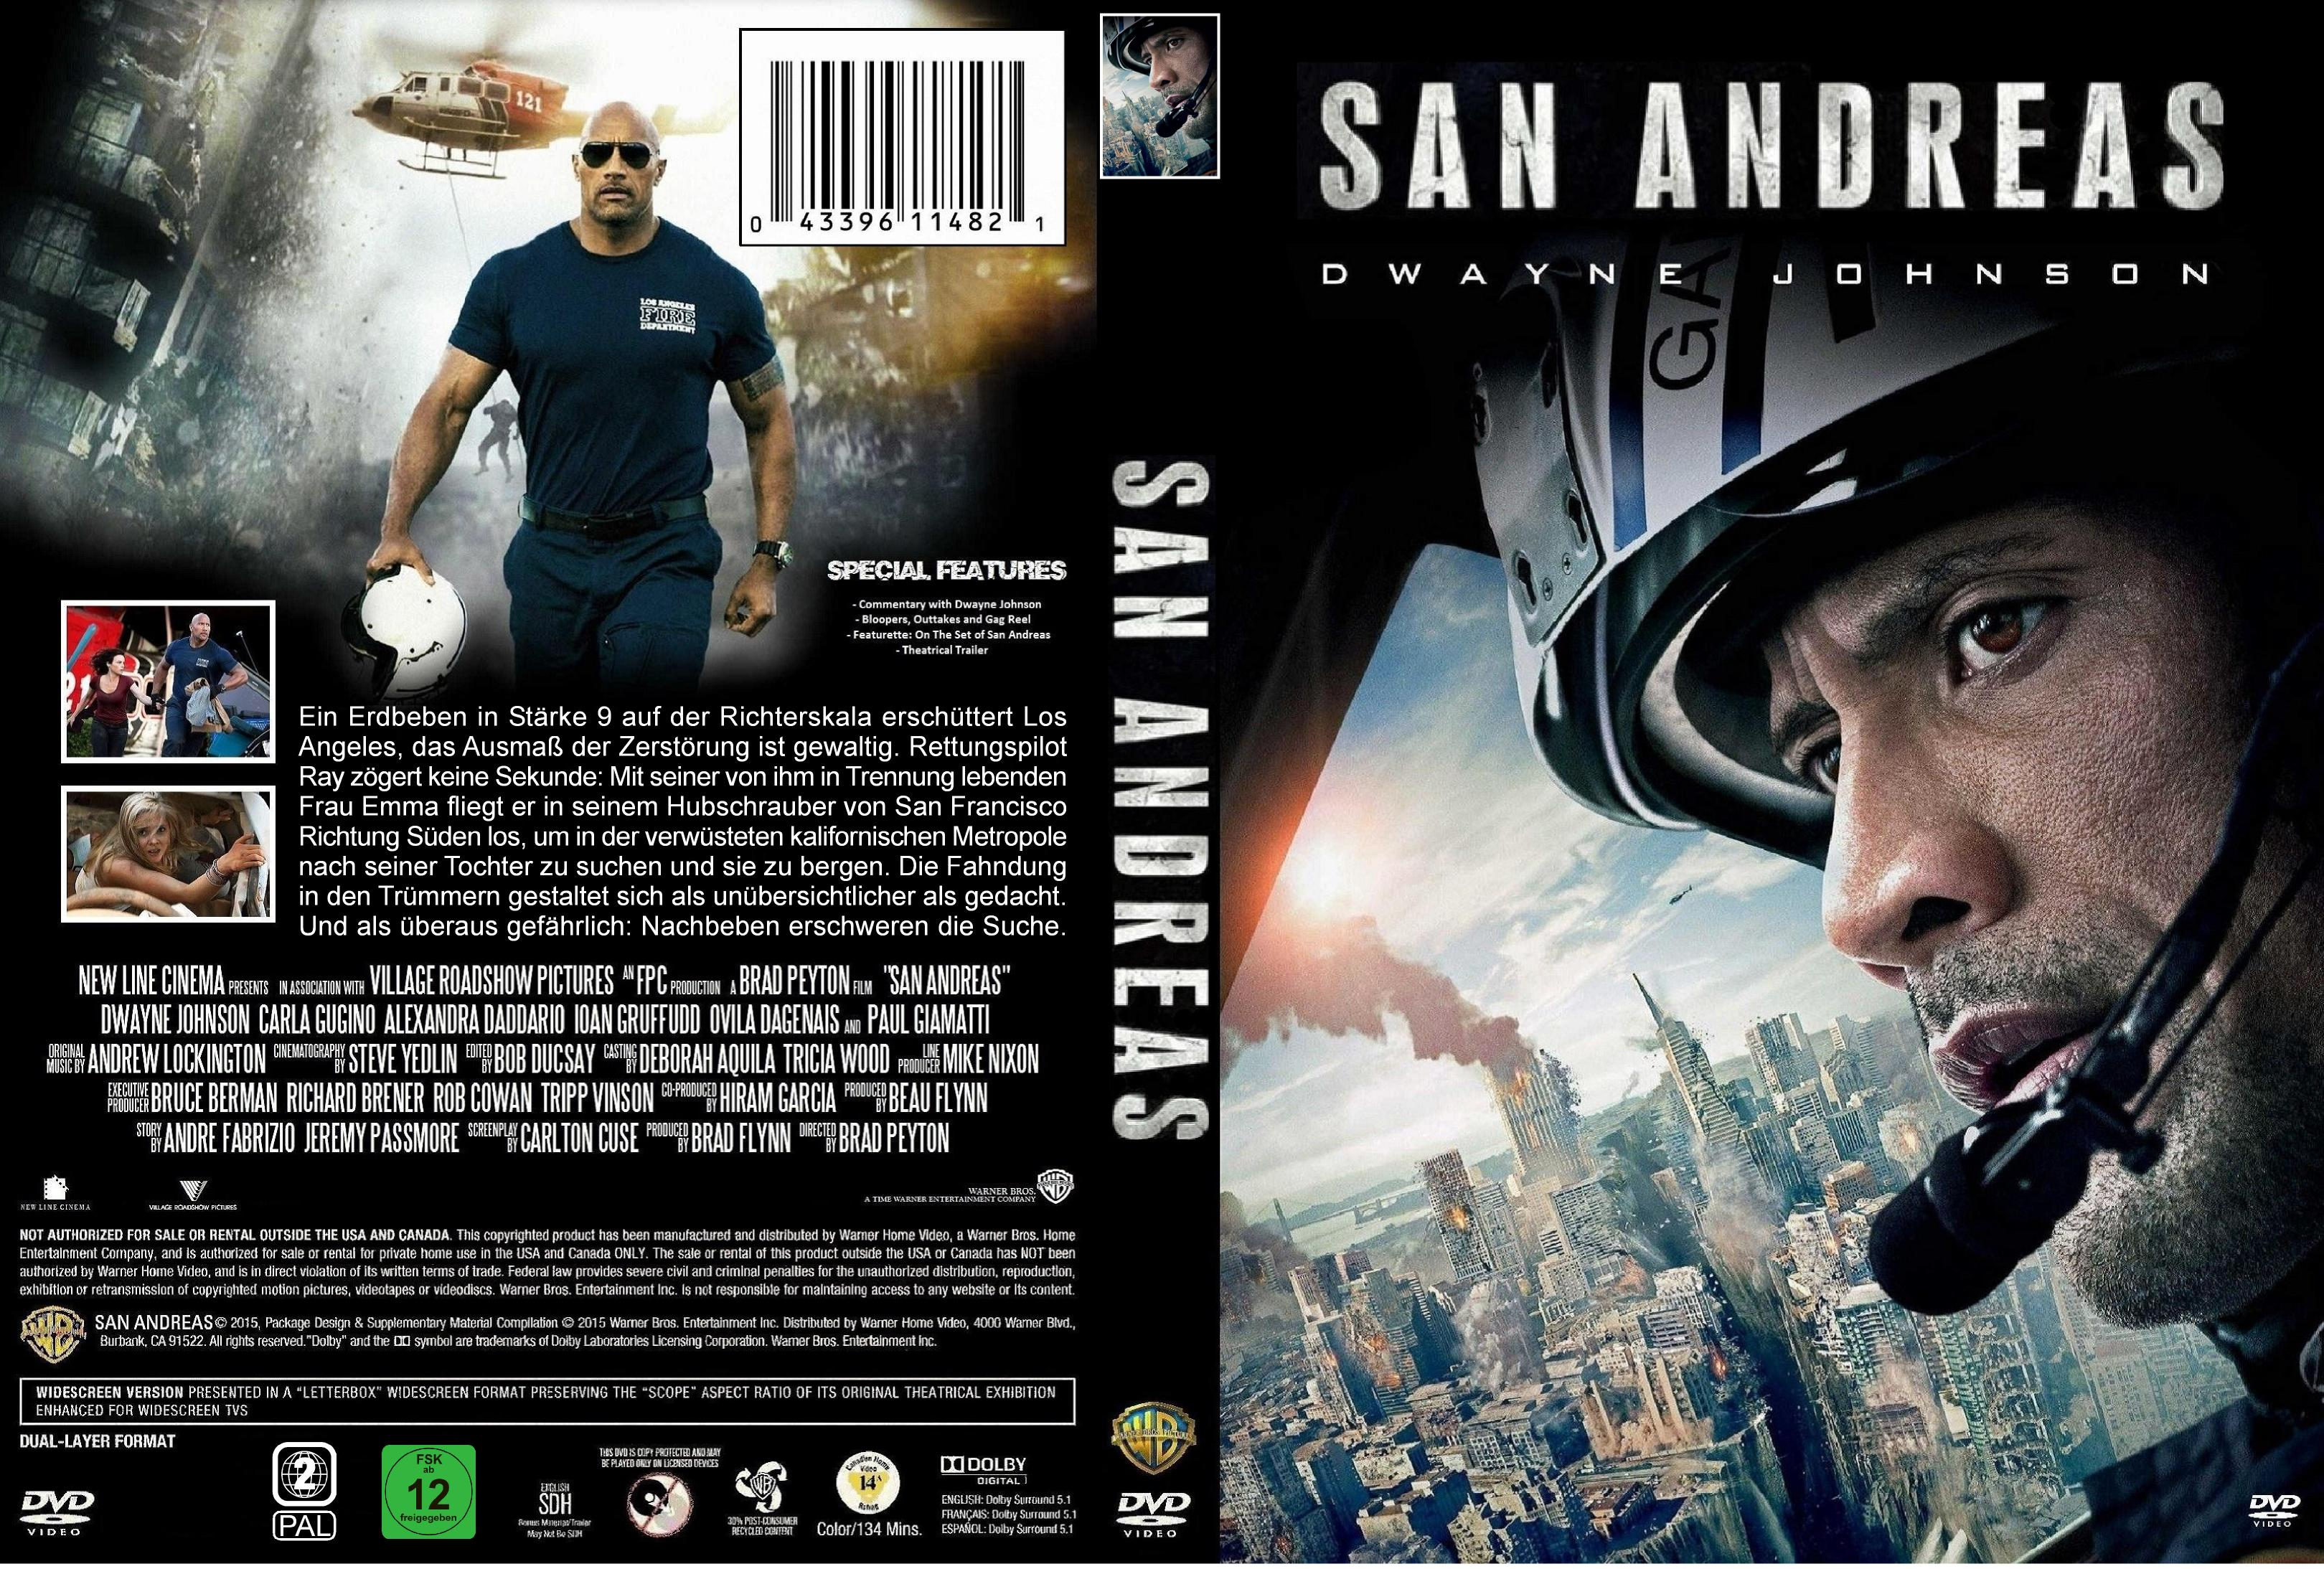 San Andreas Movie Soundtrack Download Mp3